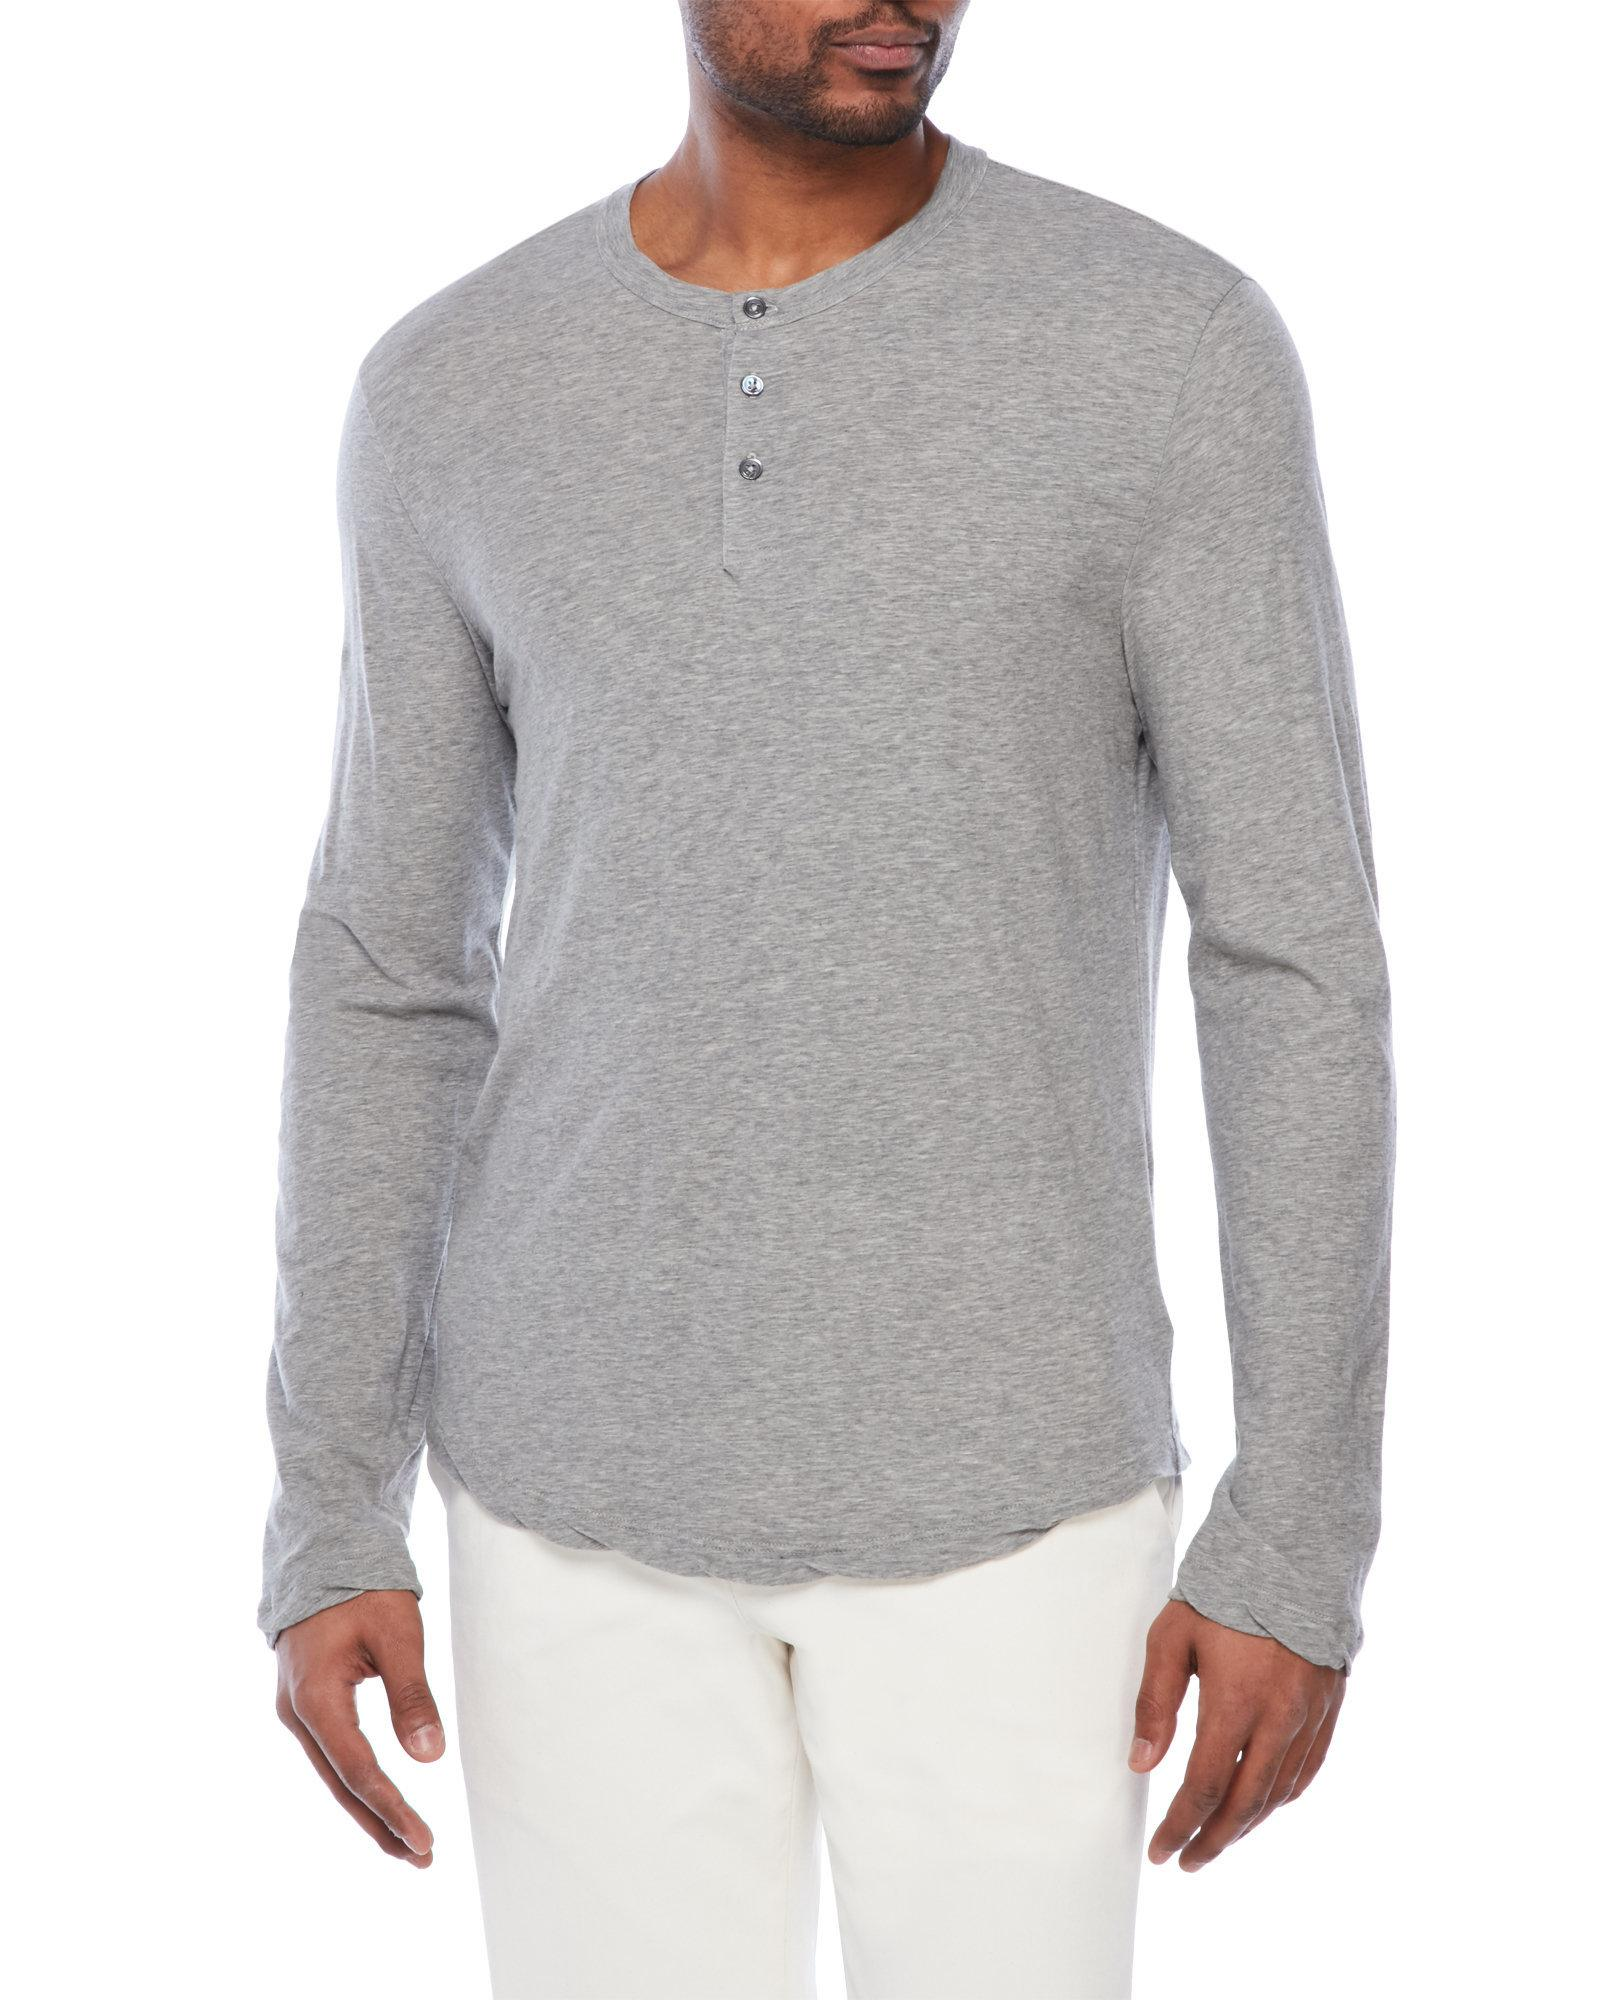 James Perse Jersey Knit Henley In Gray For Men Lyst